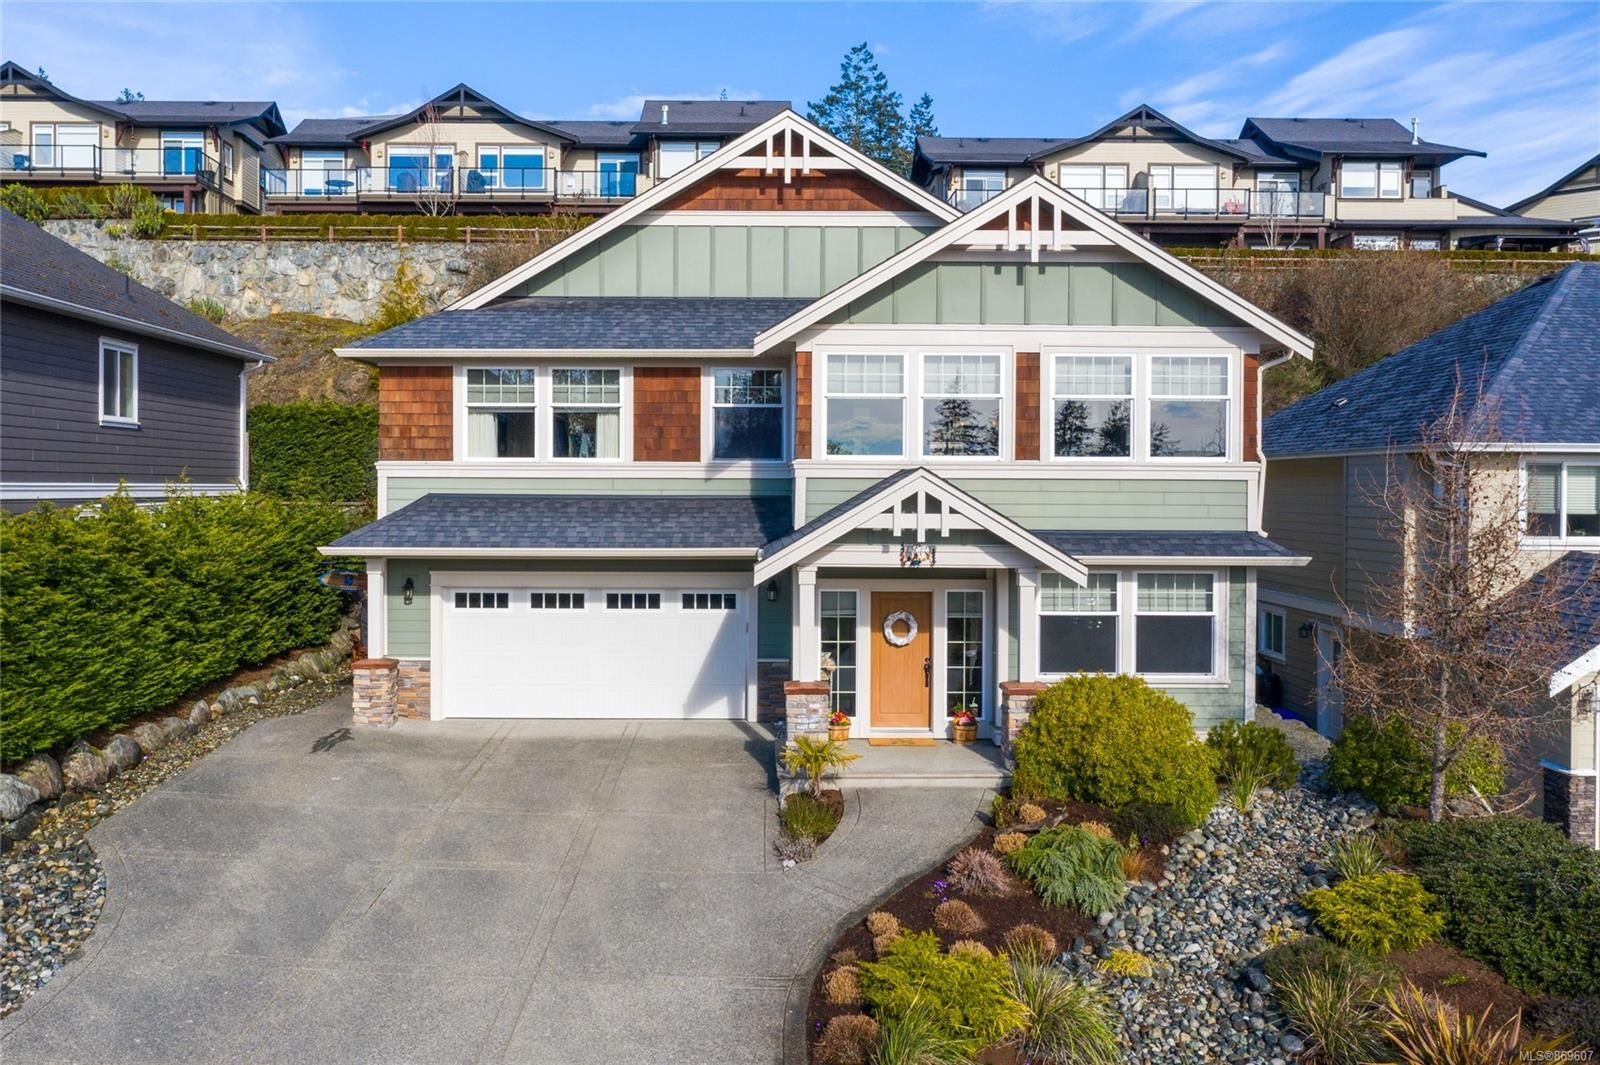 Main Photo: 6970 Brailsford Pl in : Sk Broomhill House for sale (Sooke)  : MLS®# 869607